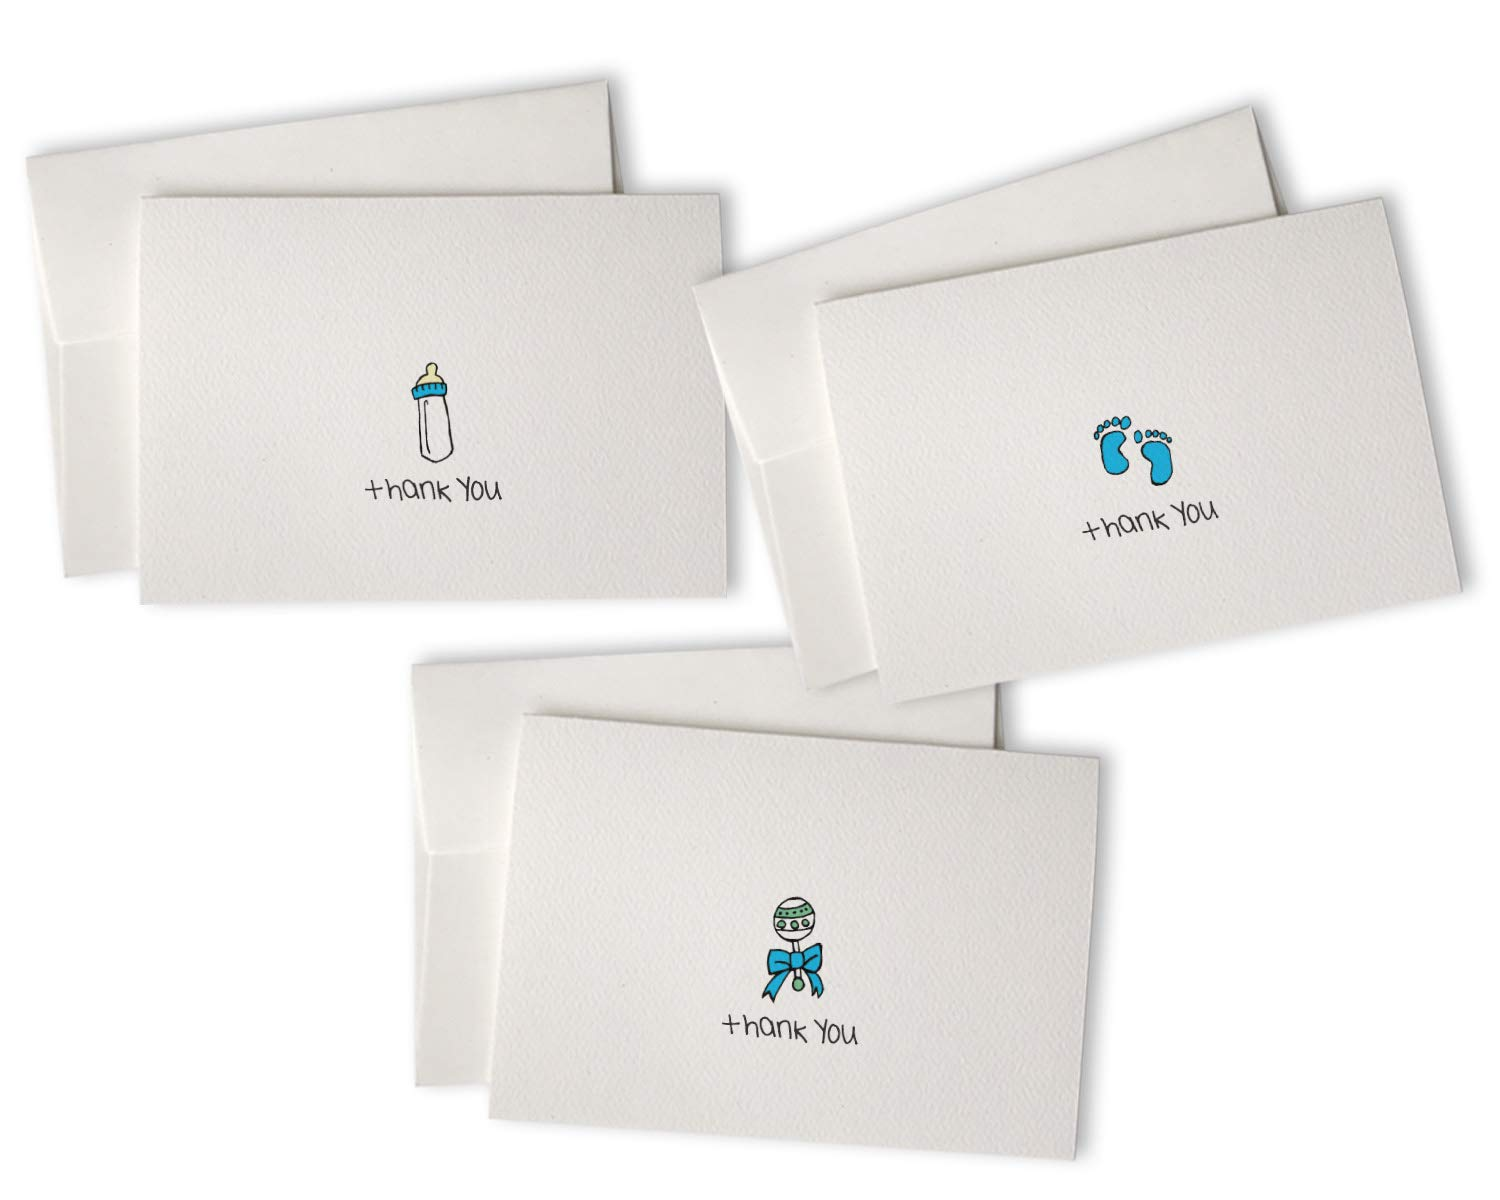 Blue Baby Thank You Cards with Envelopes - Set of 48 Cards & Envelopes - Perfect for Baby Showers & Baby Boy Gifts